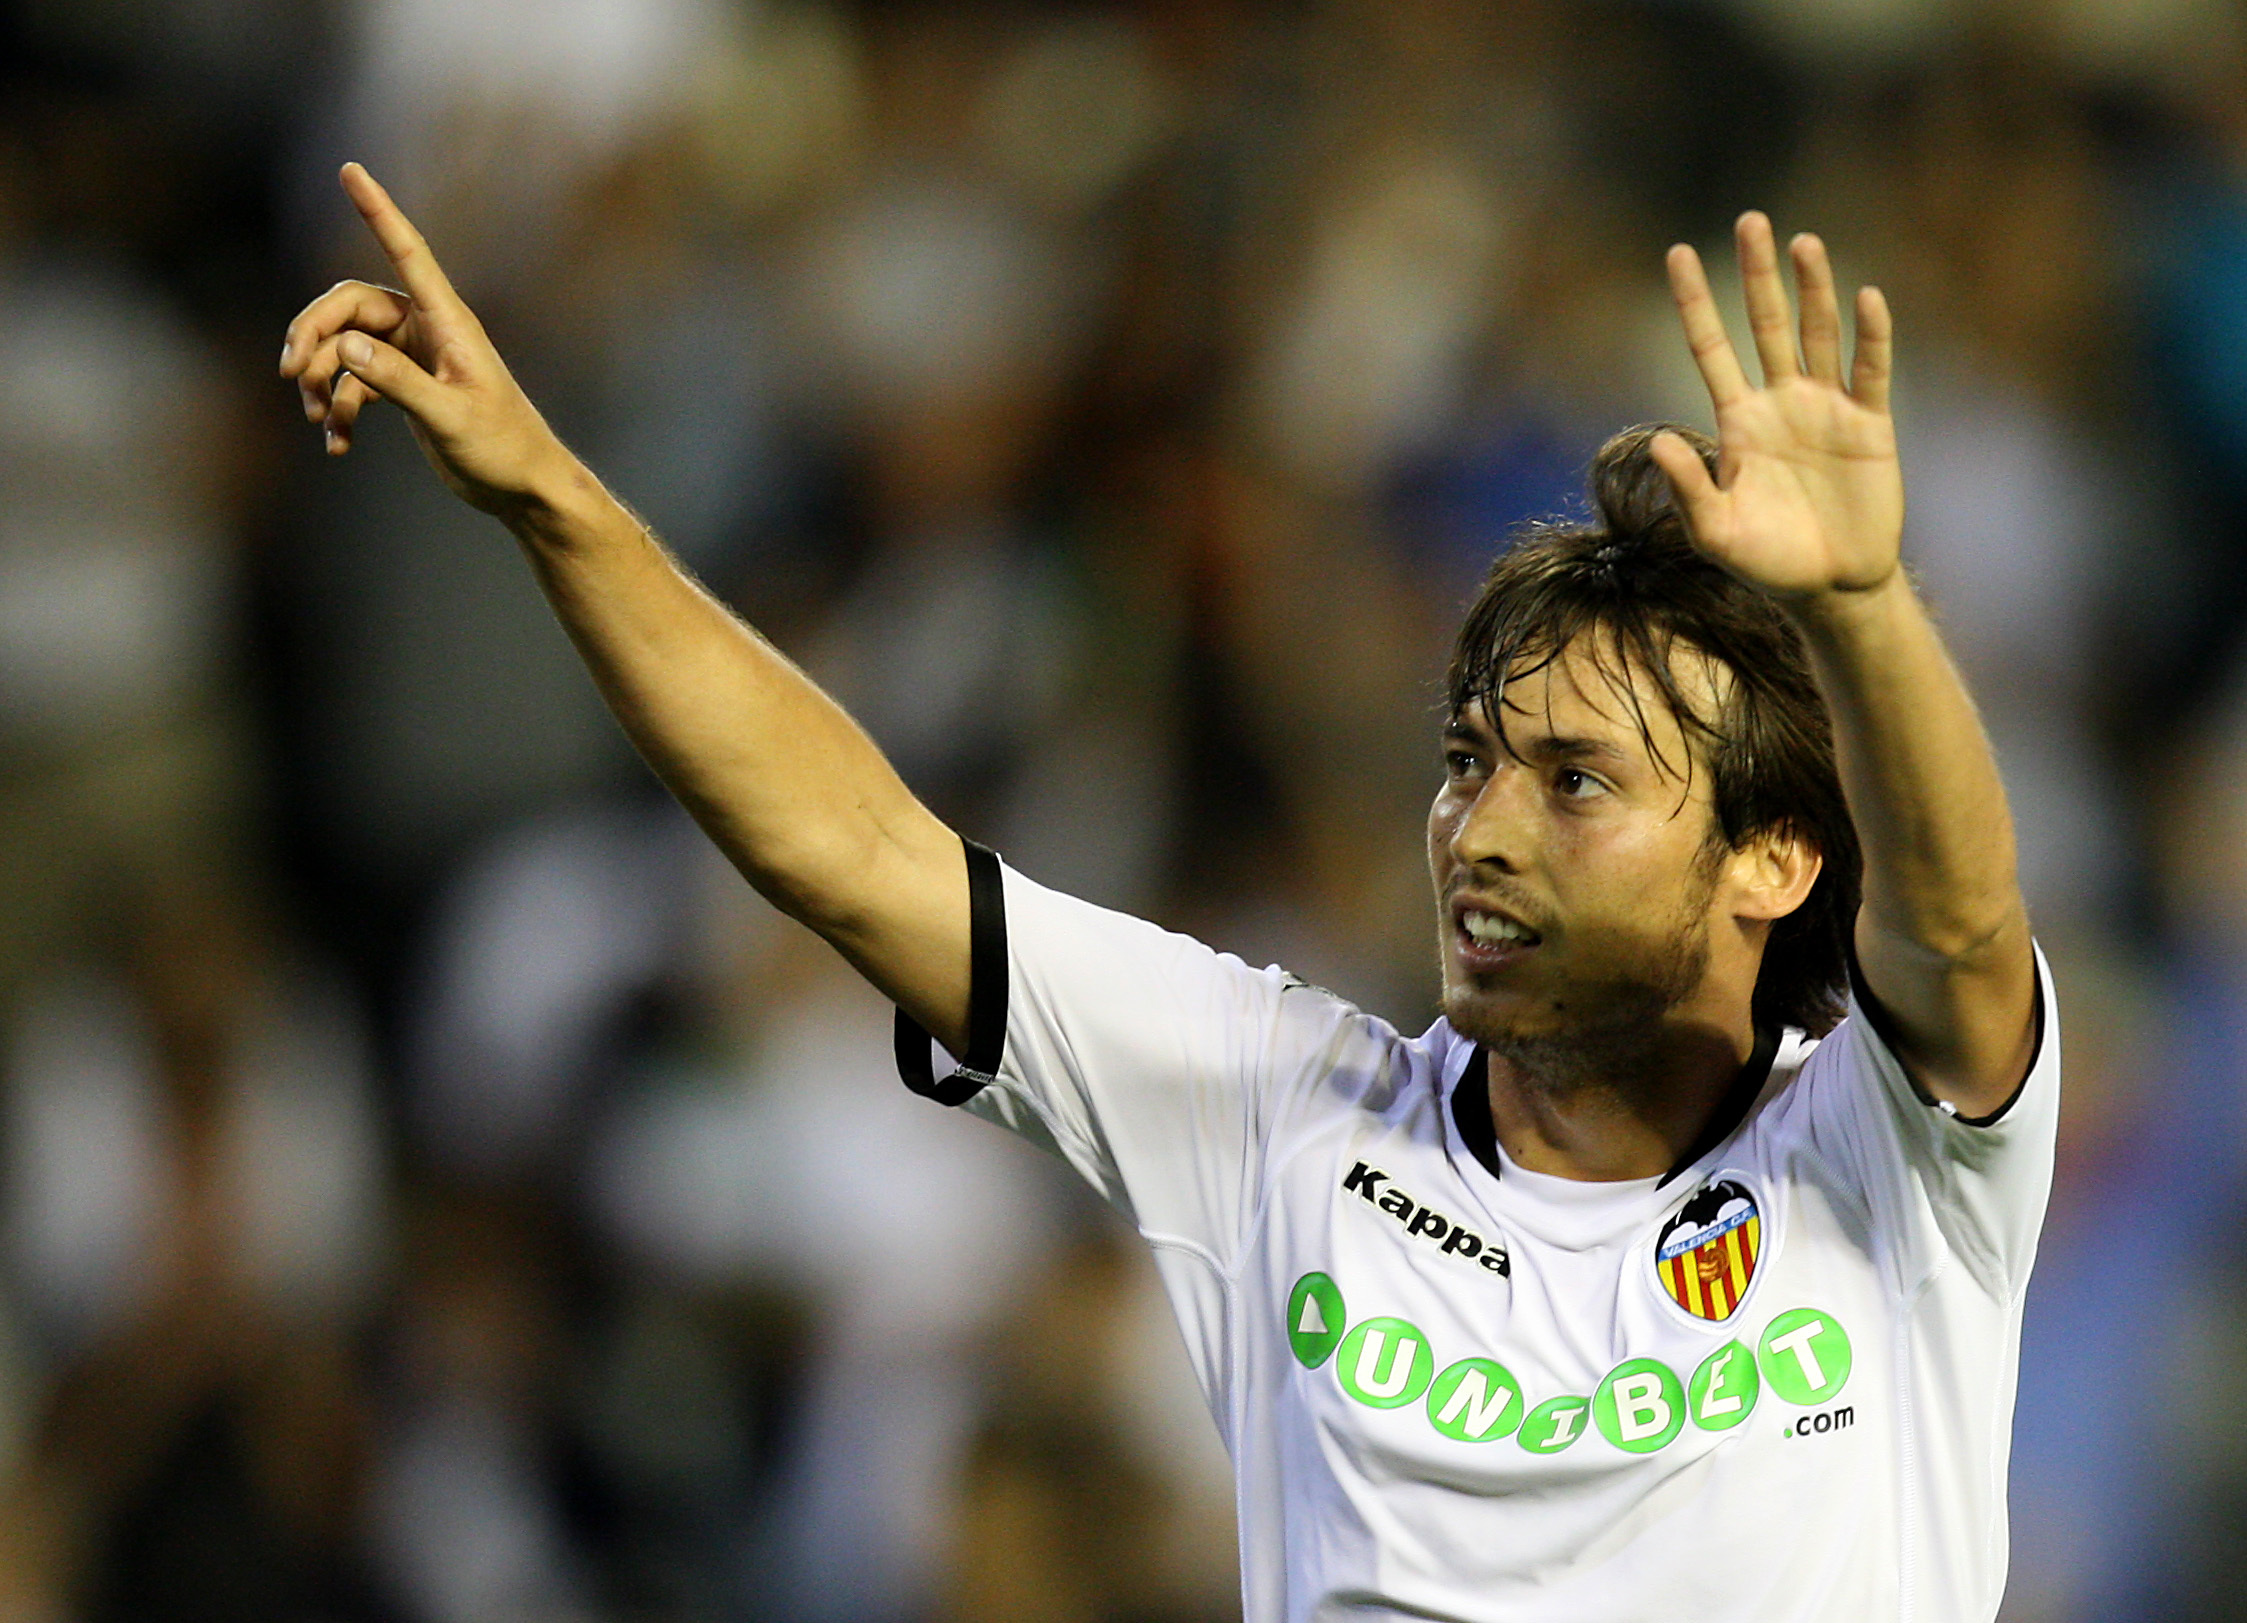 Silva started his career at Valencia before moving to England. Image: PA Images